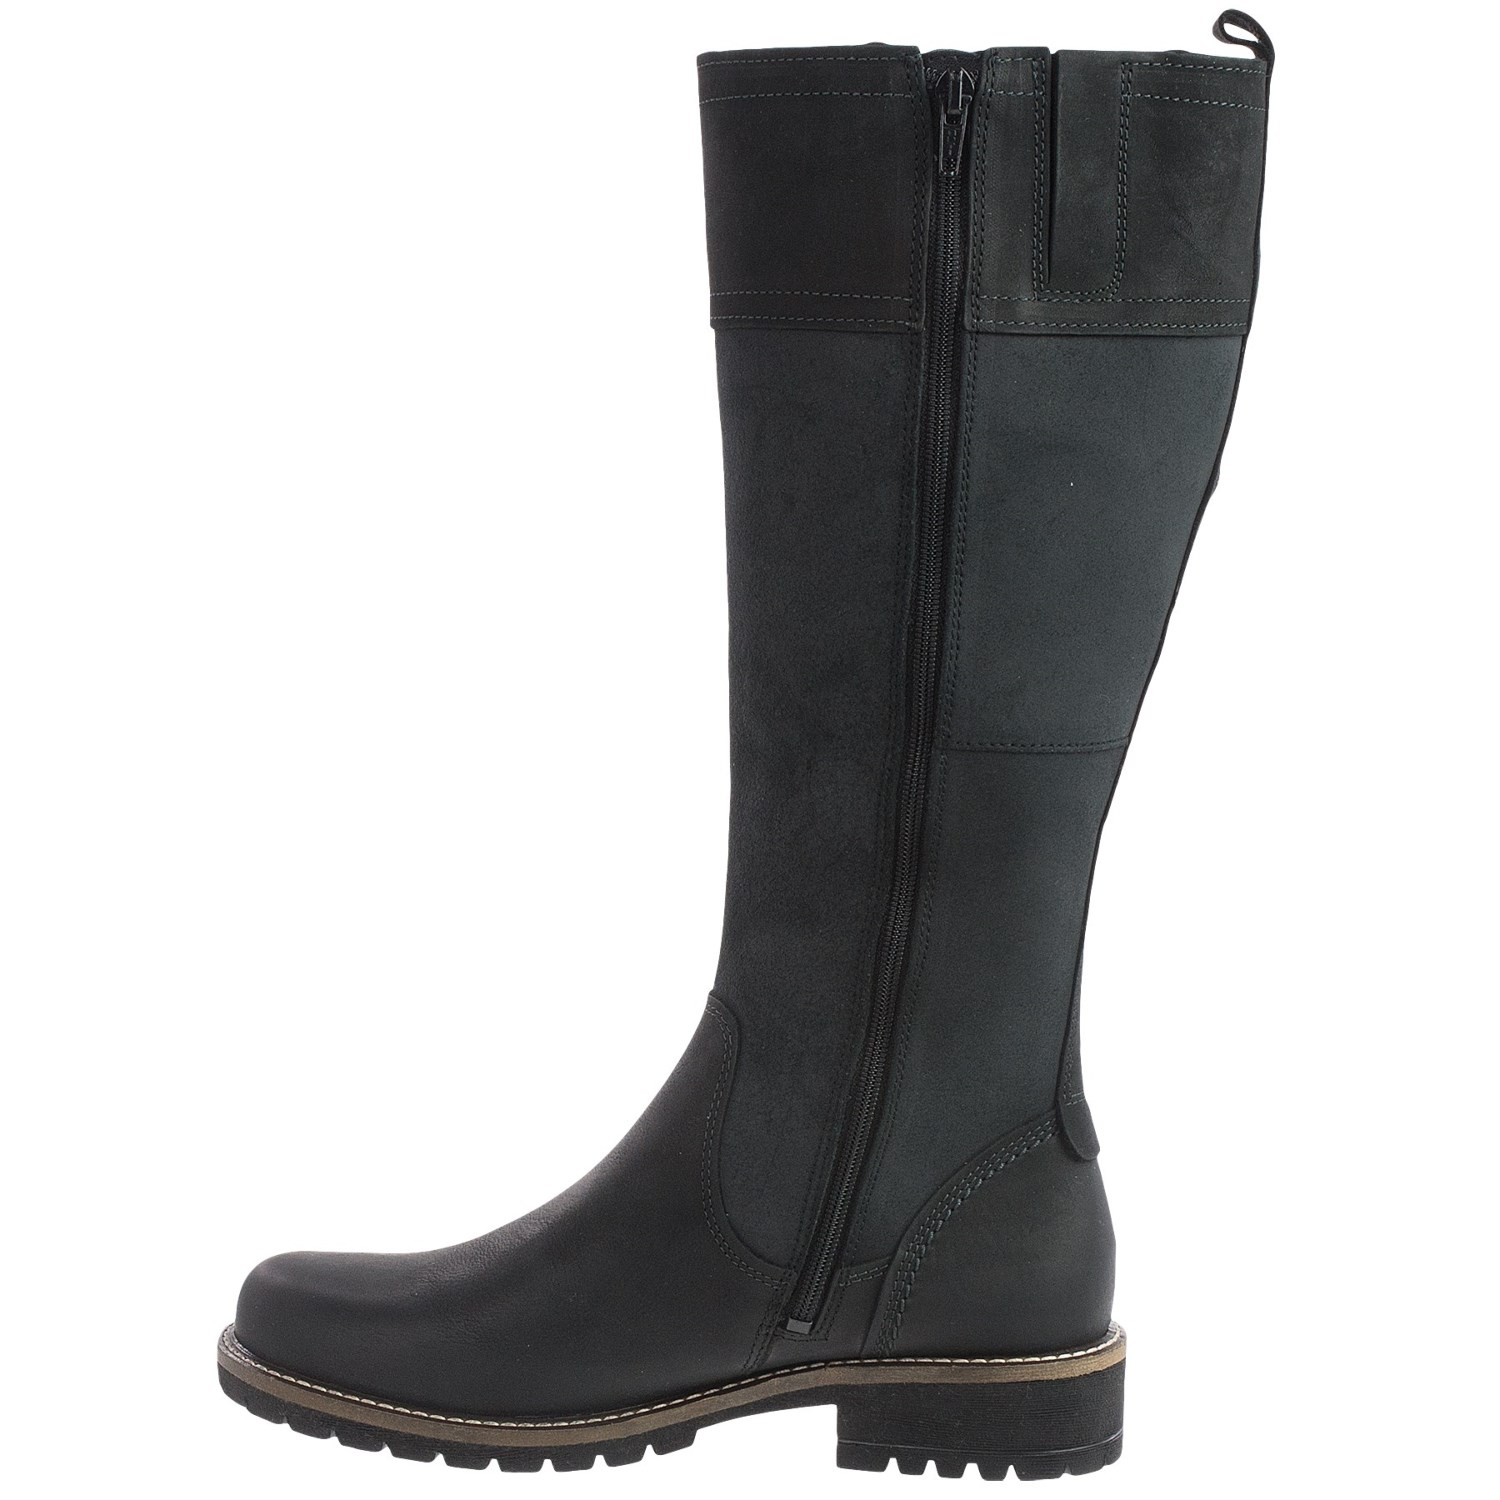 Tall Boots For Women aIyhVKlk